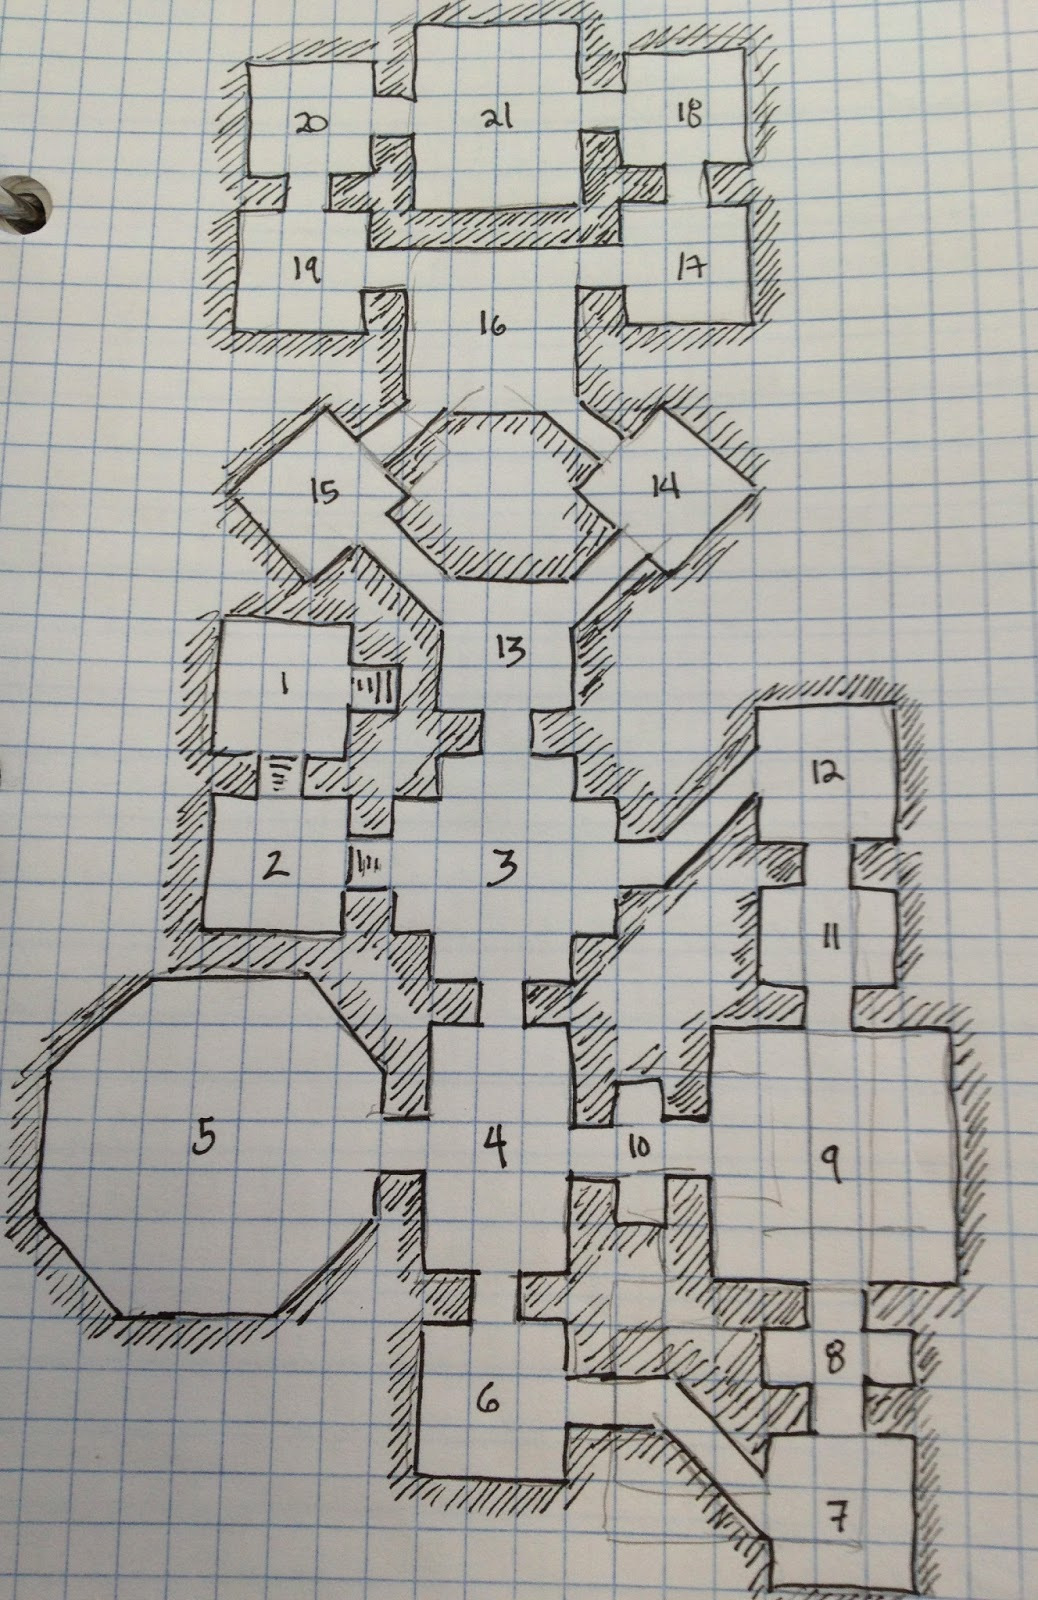 savage swords of athanor  monday map  more dungeons